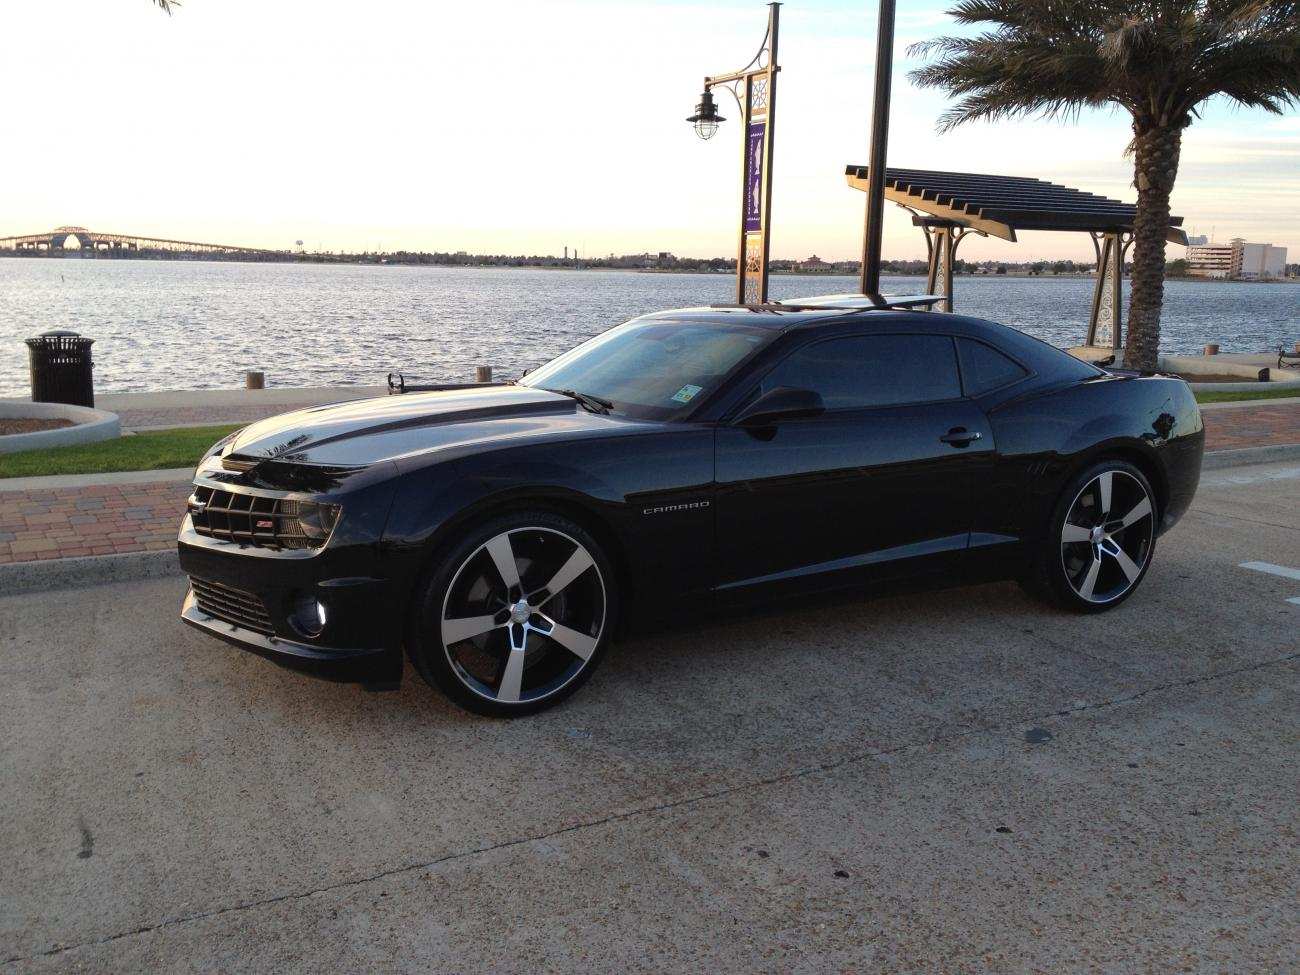 50 Inch Rims On Chevy : Quot inch staggered chevy camaro ss like wheels rims tire